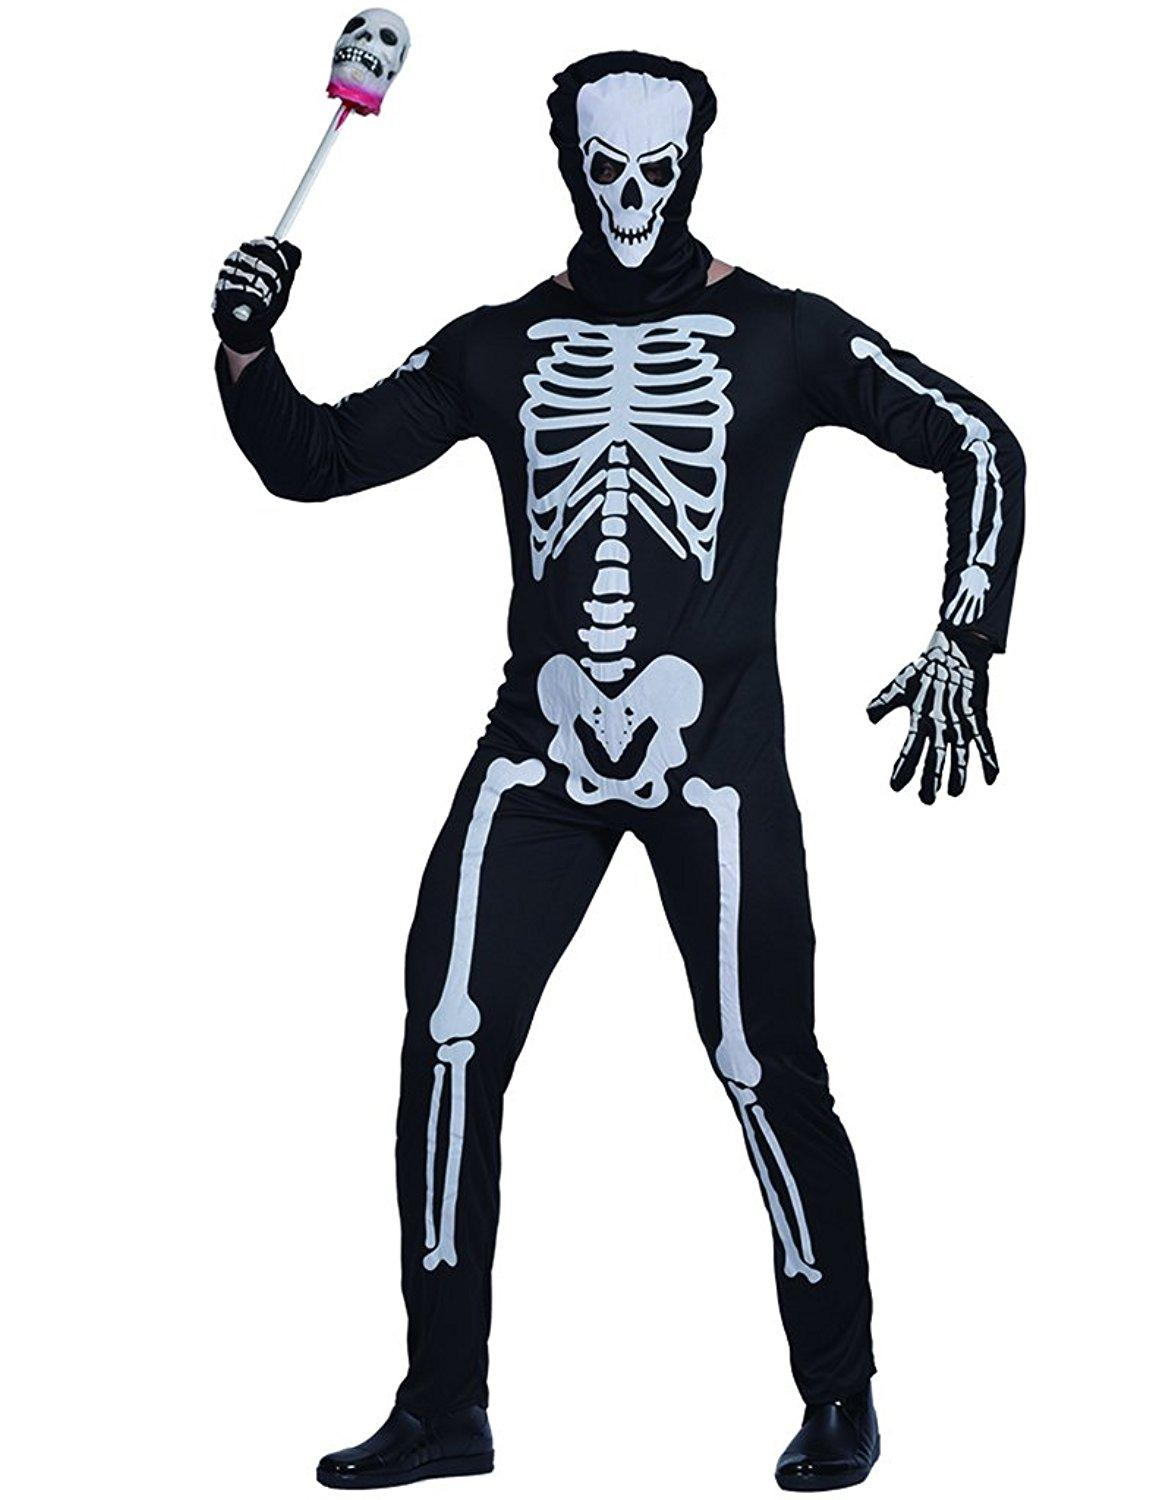 eraspooky mens skeleton jumpsuit bone skin suit halloween costume themes for halloween costumes kids group halloween costumes from fantastcostumes - Skeleton Halloween Costume For Kids